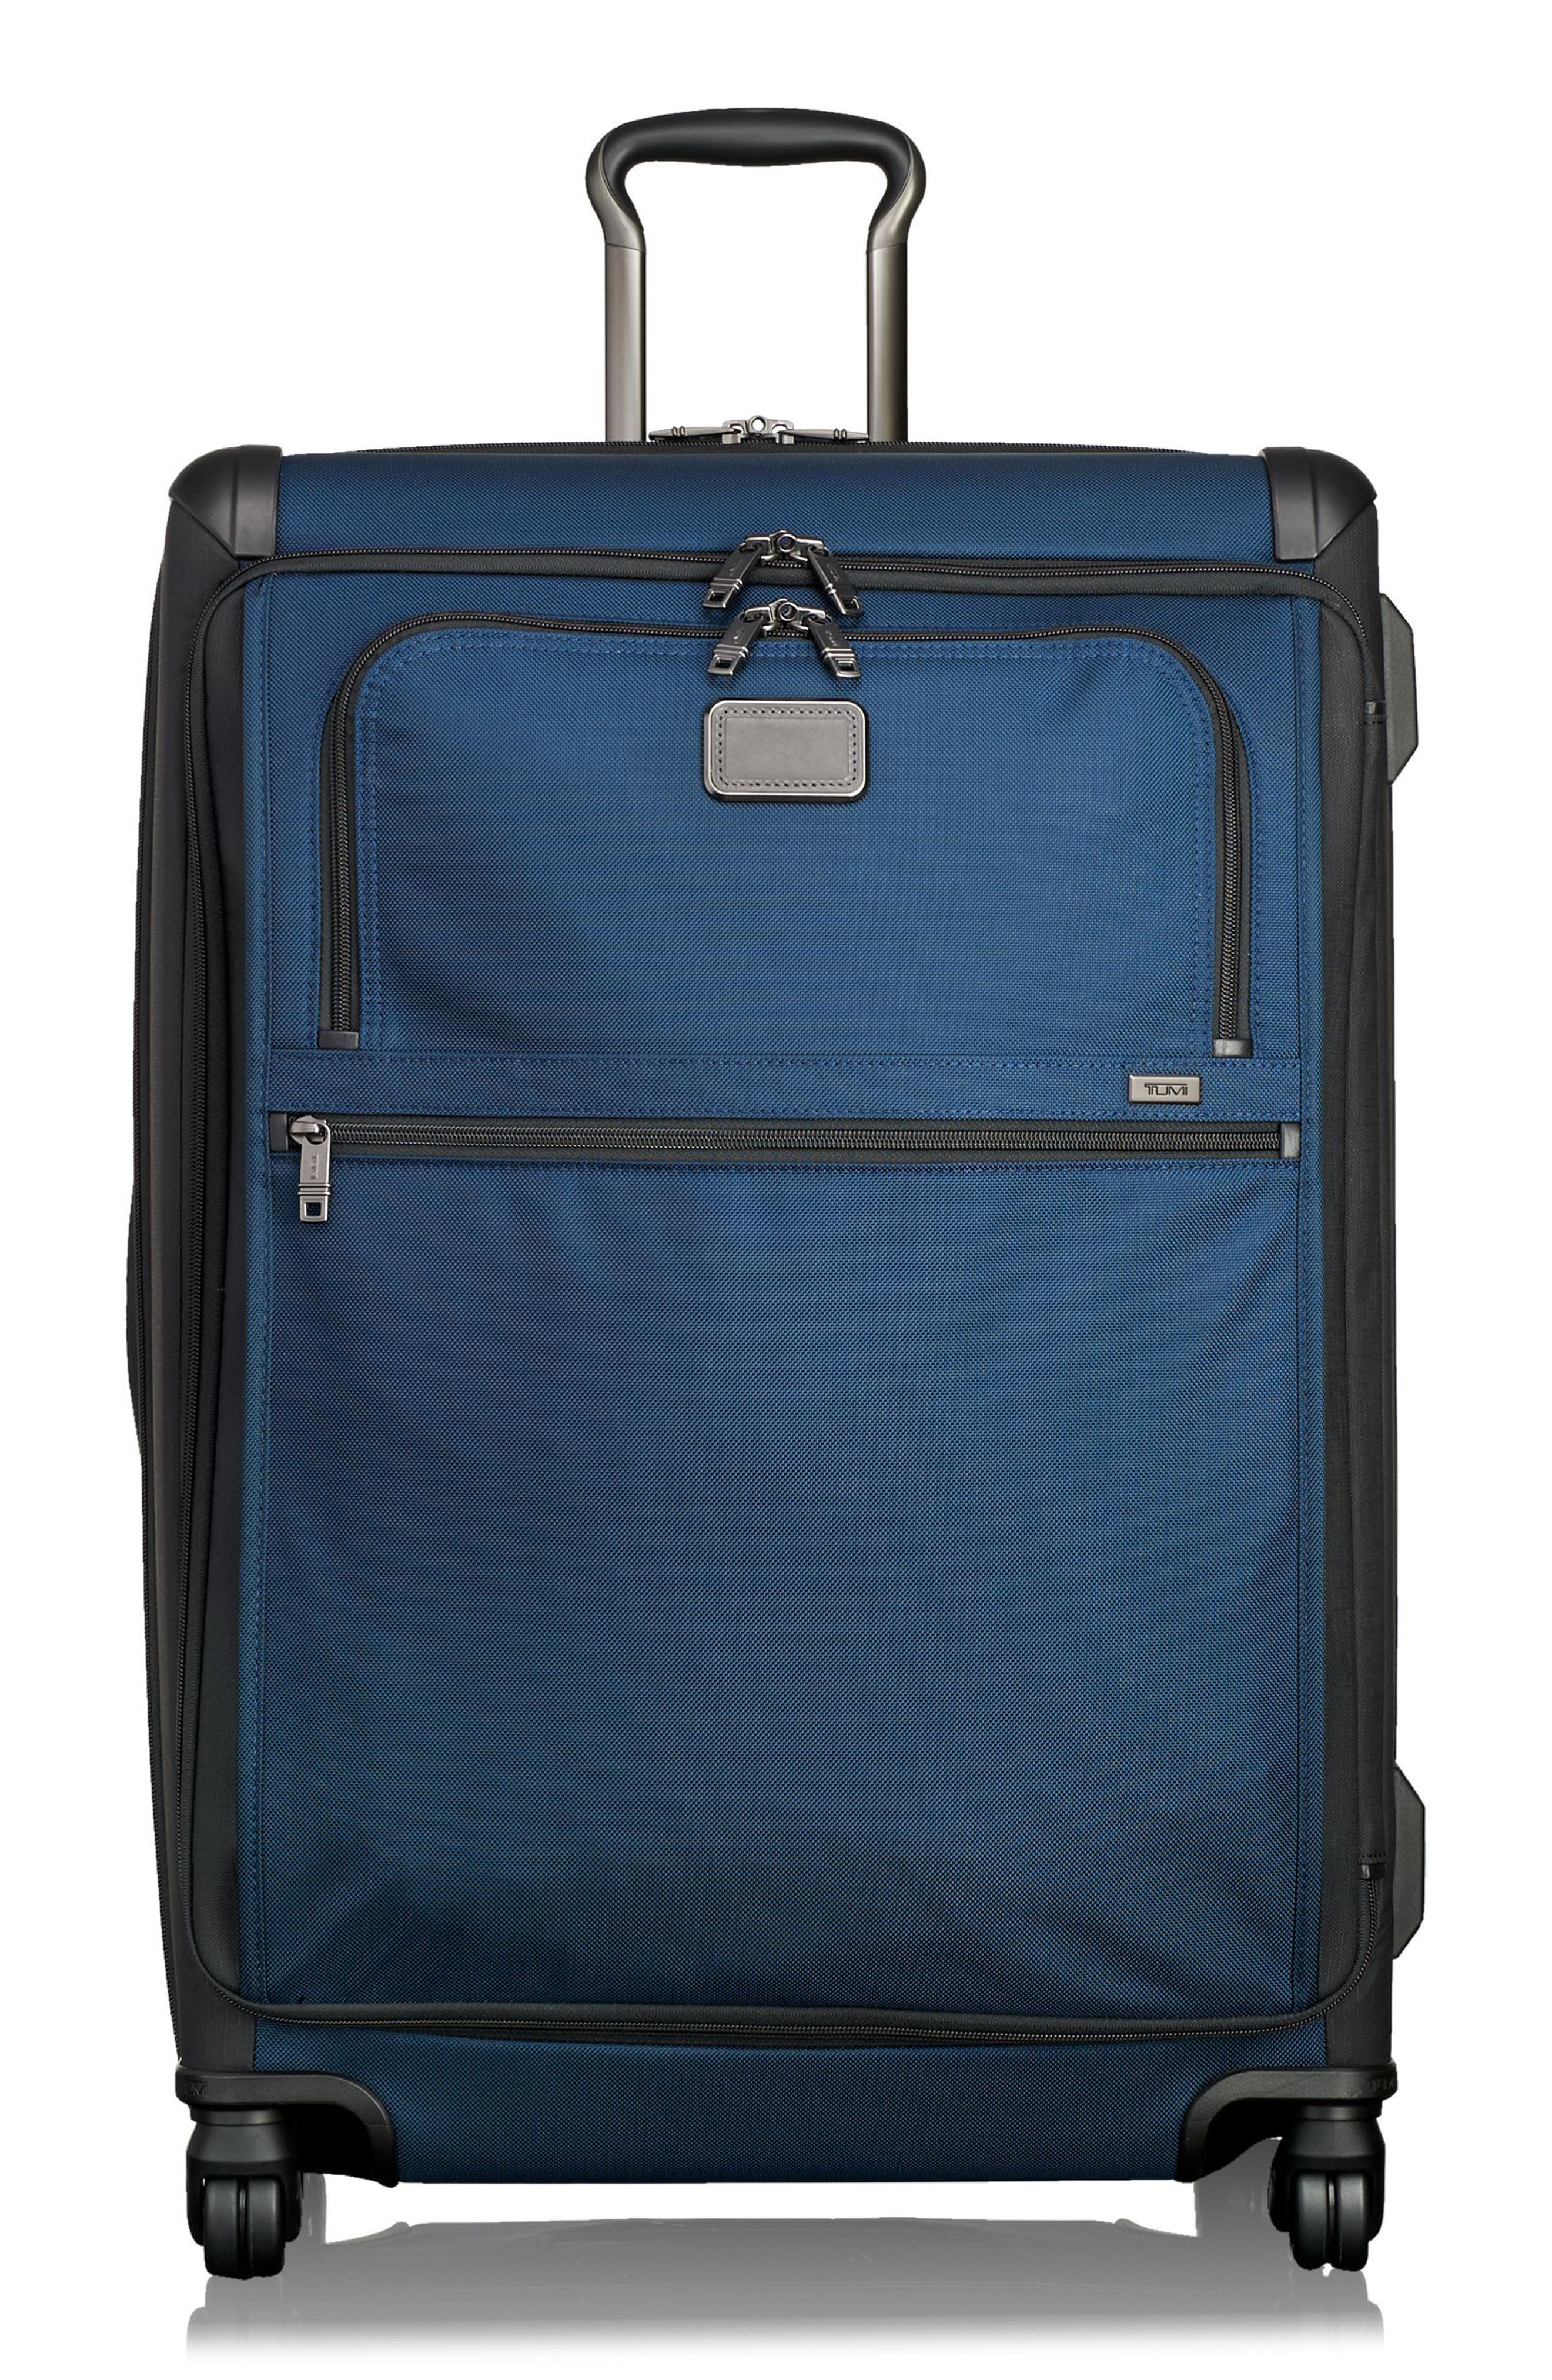 Main Image - Tumi Alpha 2 Medium Trip 29-Inch Four-Wheel Packing Case